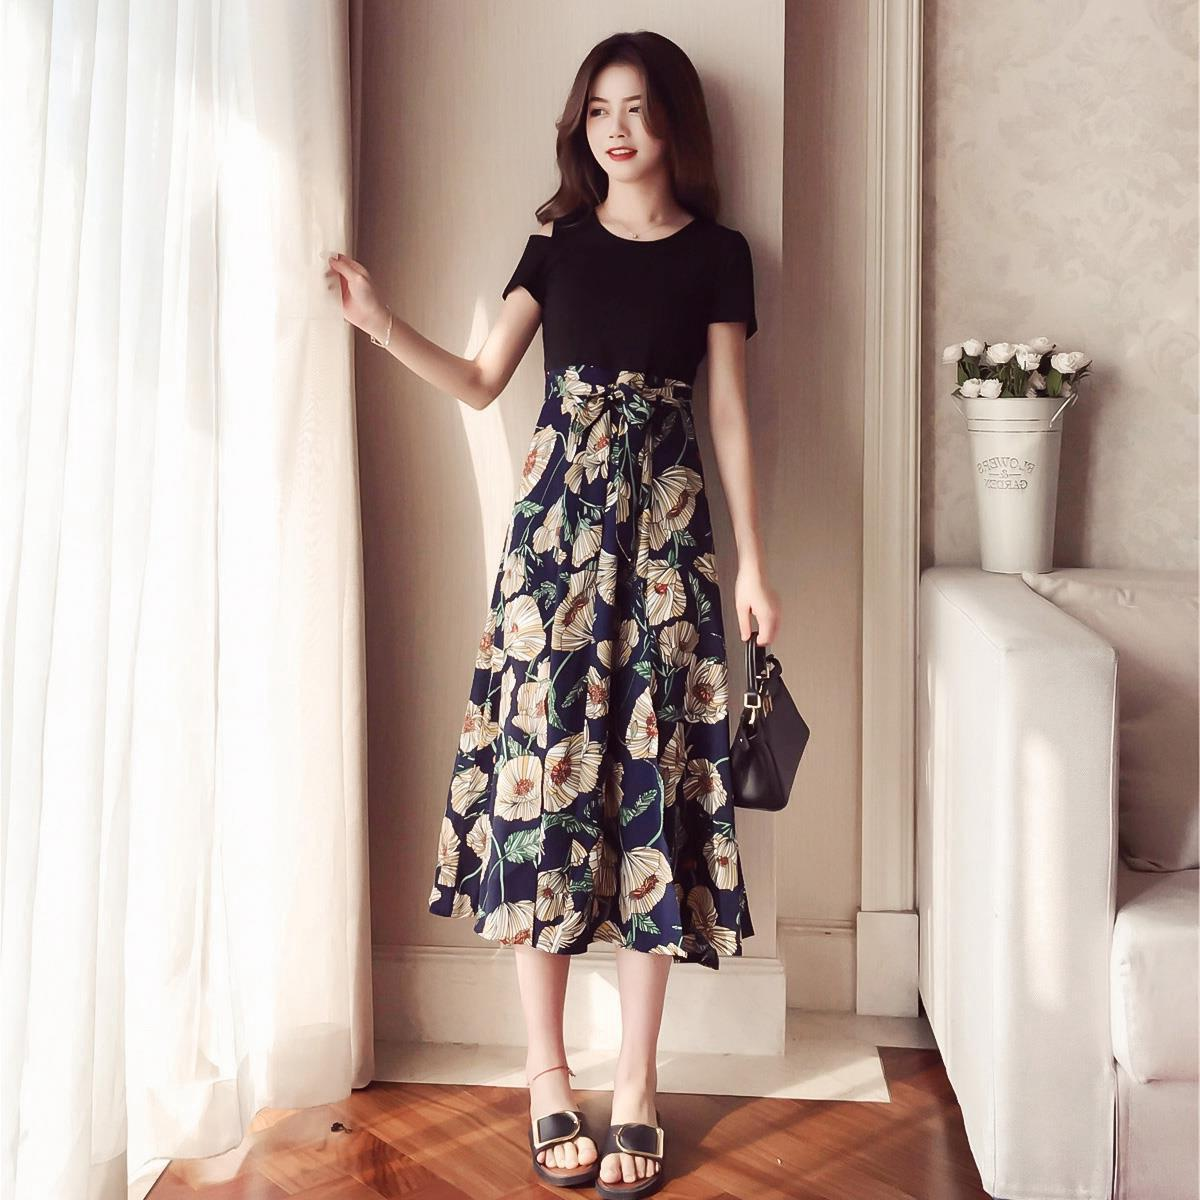 c6454557bc6 Chubby Mm Favorite Slimming Cover Belly Large Size Dress Summer Large  Girl s Hide Meat Western Style